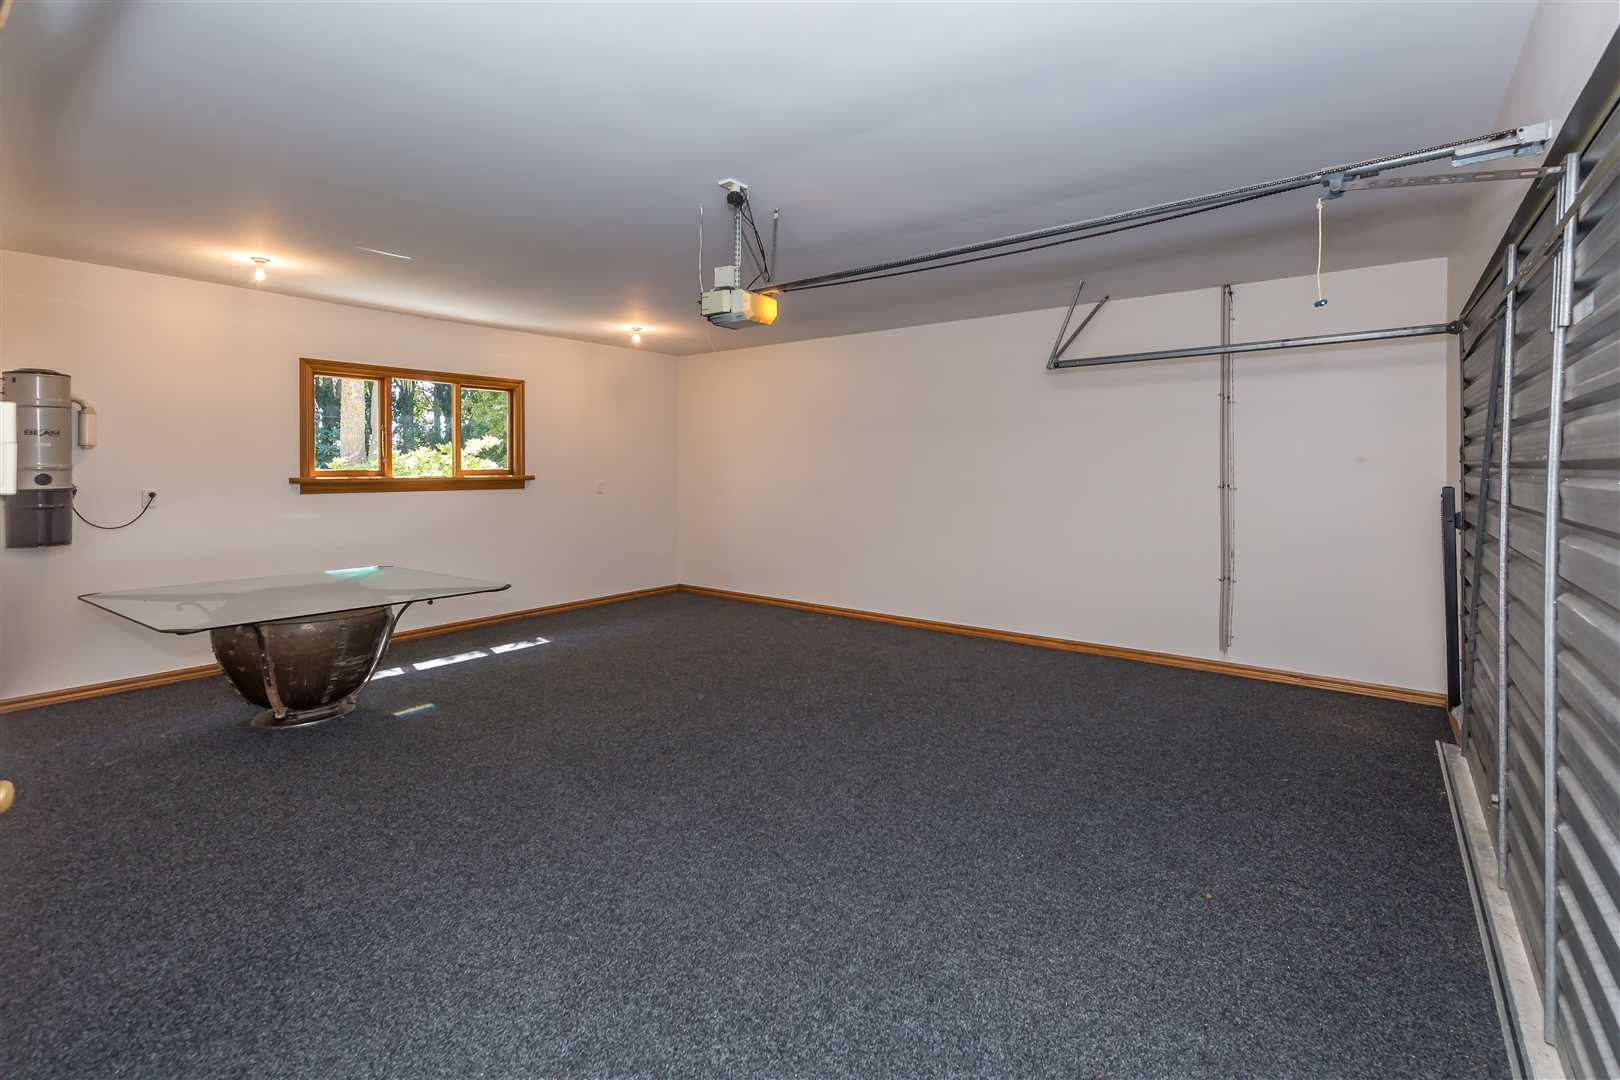 Garage, internal access for 2 vehicles